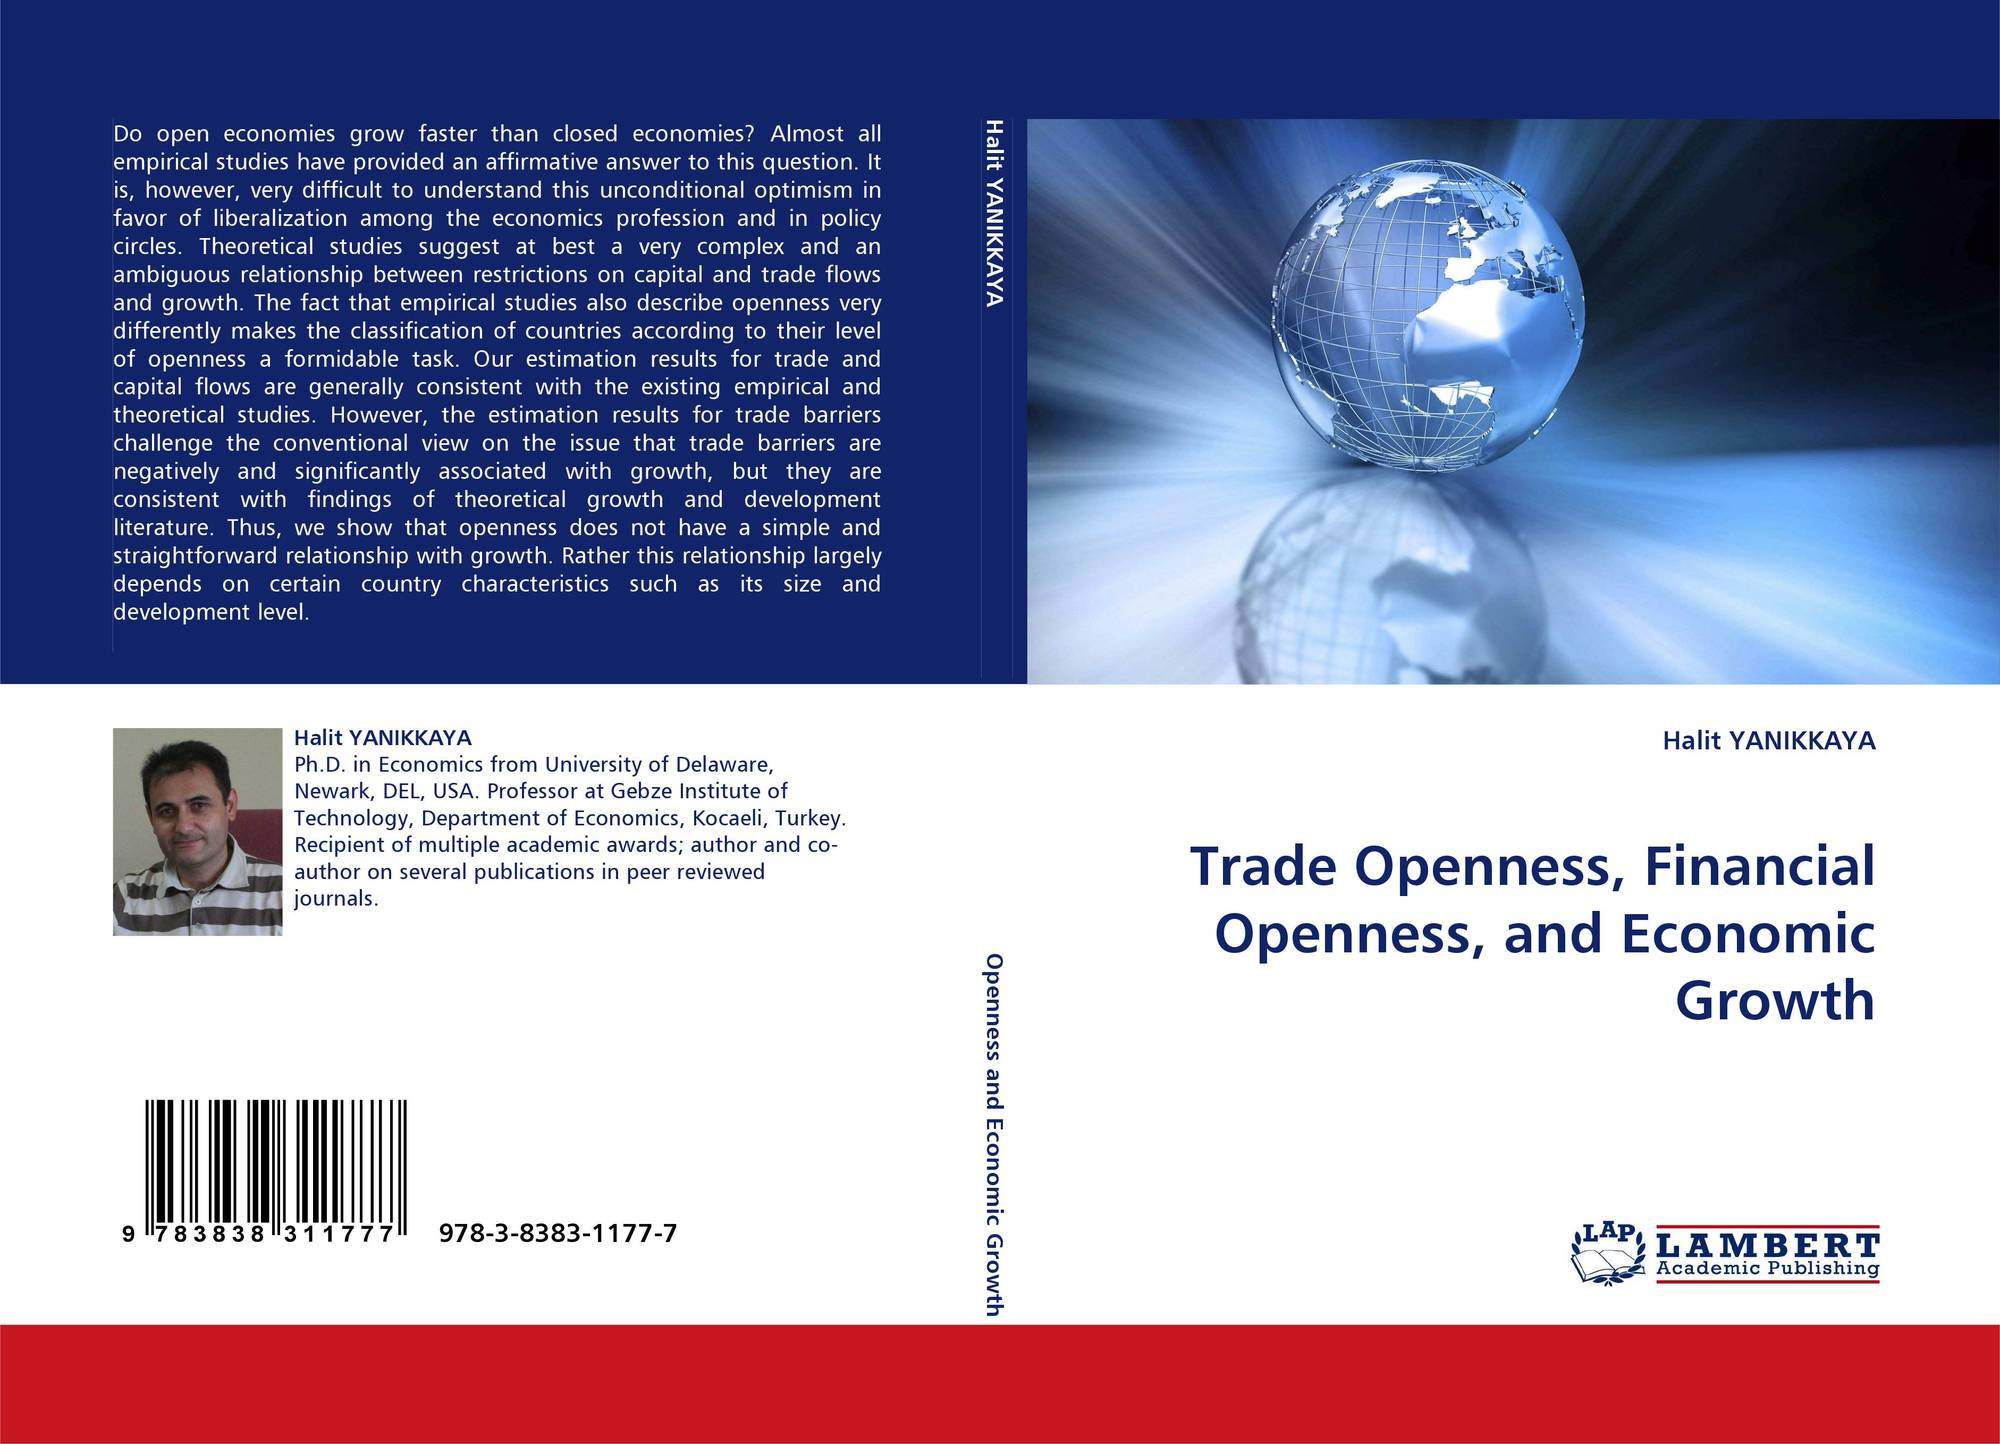 effect of trade openness on economic growth economics essay The econometric model that assesses the effects of trade openness on economic growth effects of trade on economic growth growth models†, economics papers.